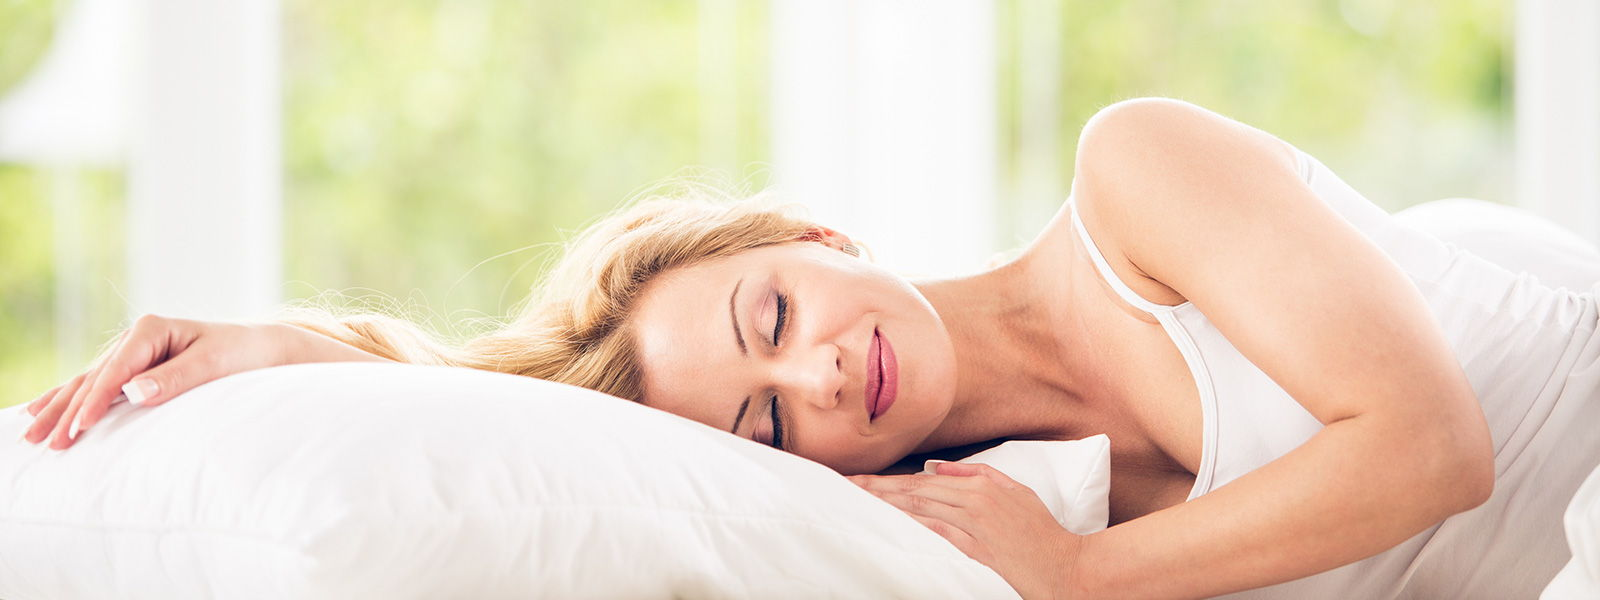 woman sleeping soundly - sleep matters good sleep guide